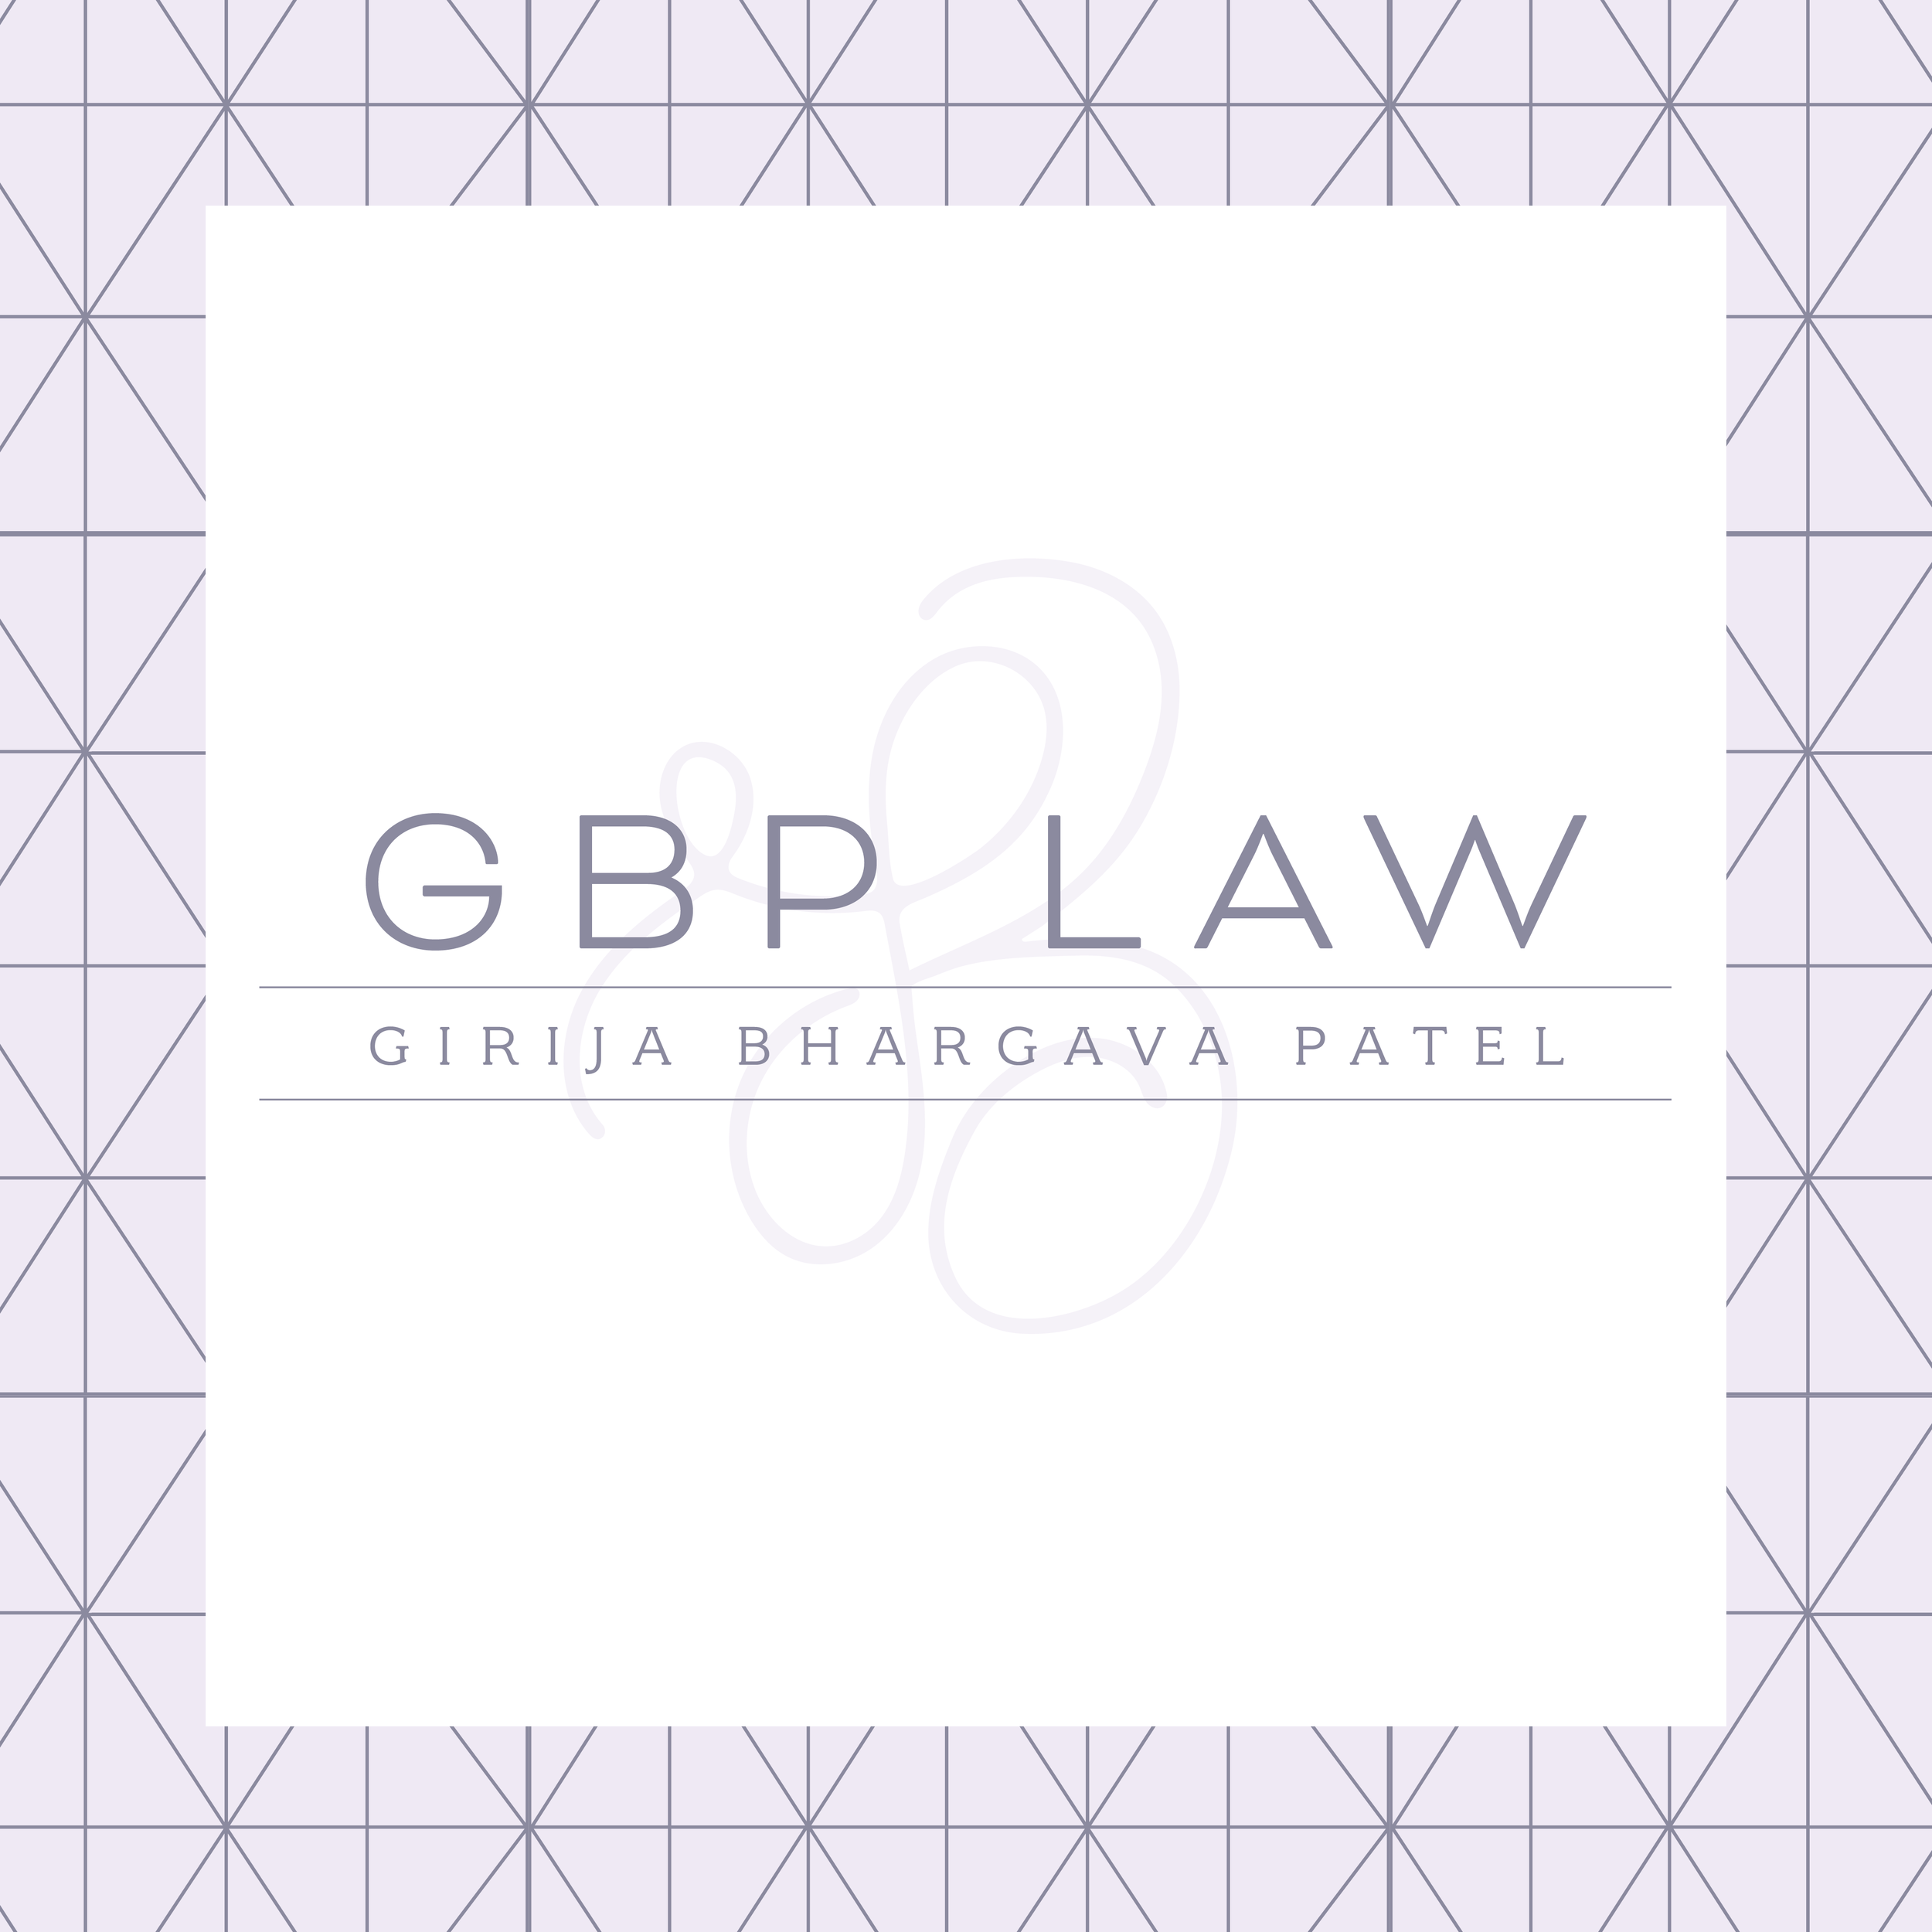 GBP Law Lawyer for Creatives Final Branding by Kindly by Kelsea